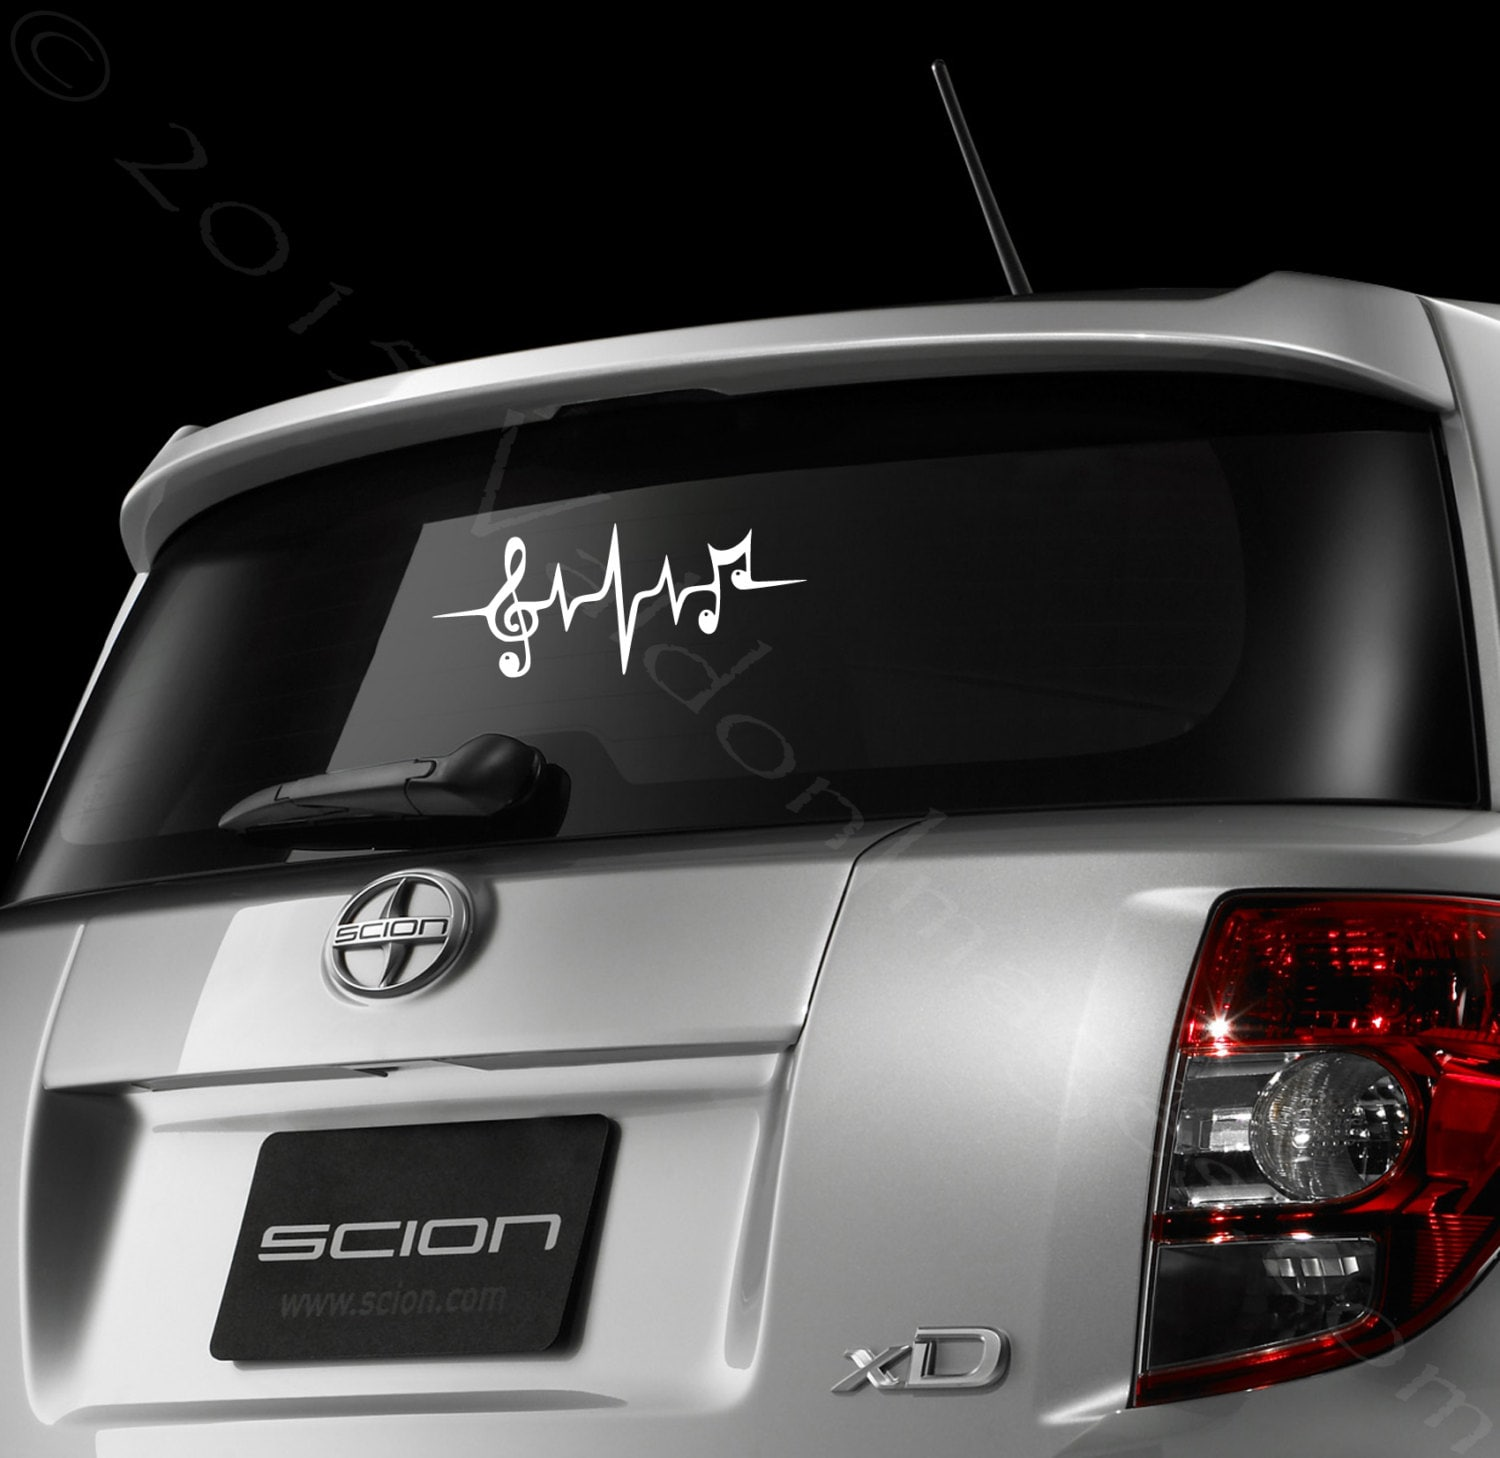 Music Note Car Decal Heartbeat Car Sticker Laptop Decal